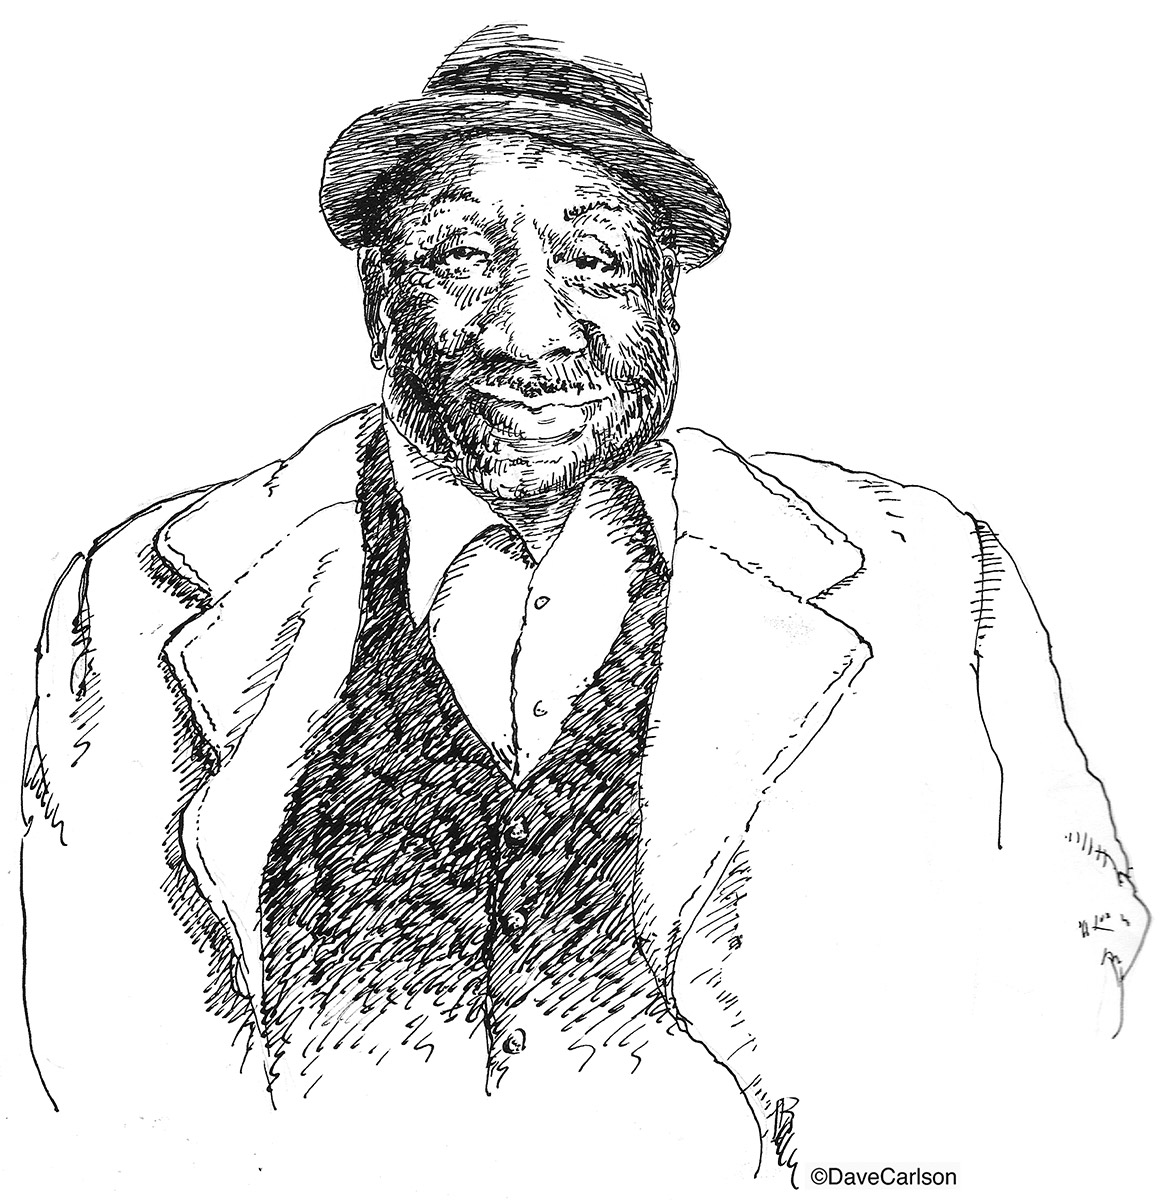 Caricature, McKinley Morganfield, Muddy Waters, Stovall Plantation, Clarksdale, Mississippi, Blues icon, Chess Records, Chicago, blues legend, photo